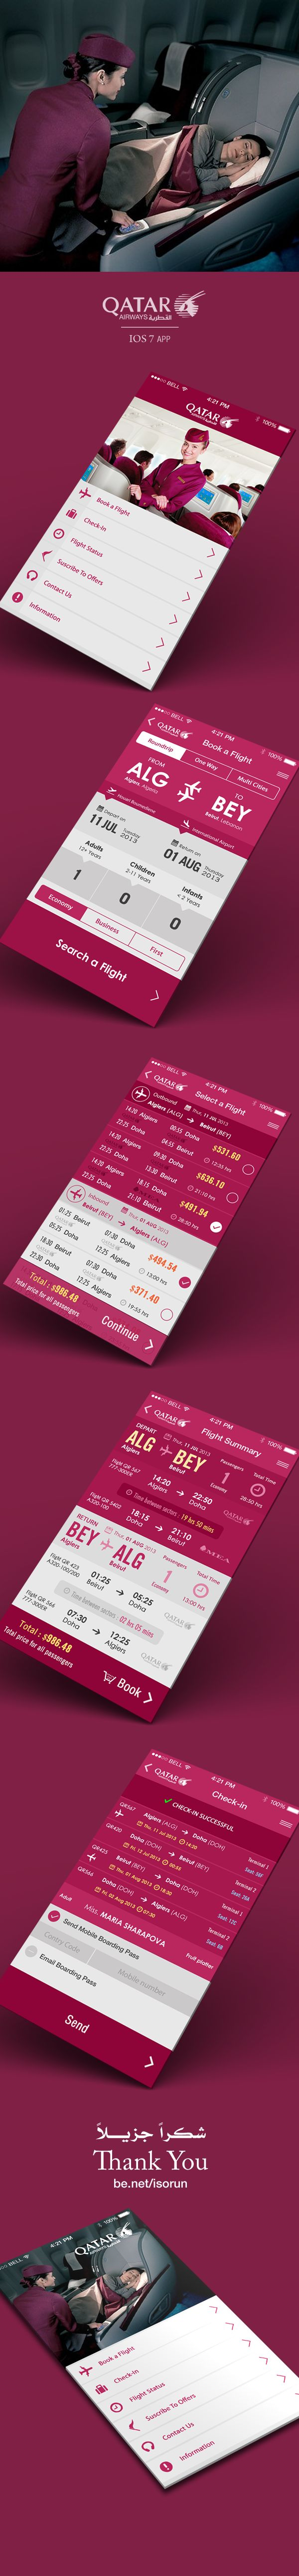 Flight Search App IOS 7 by Yasser Achachi , via Behance